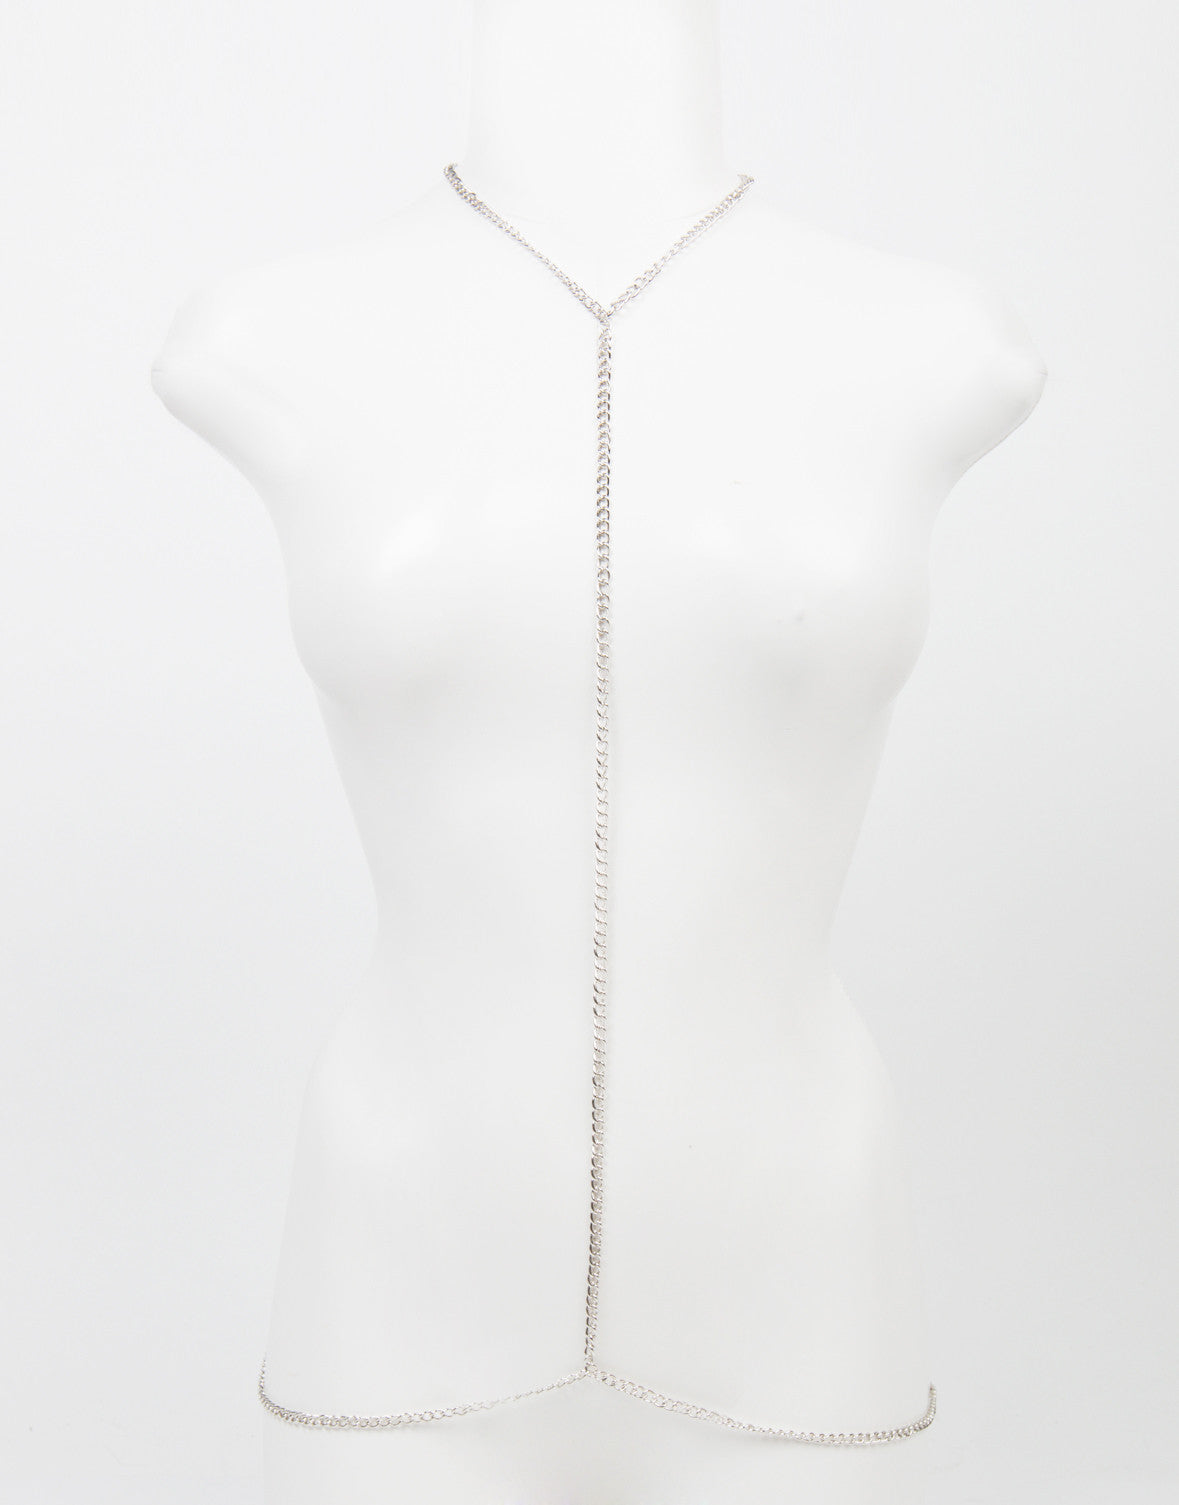 Front View of Simple Centered Body Chain